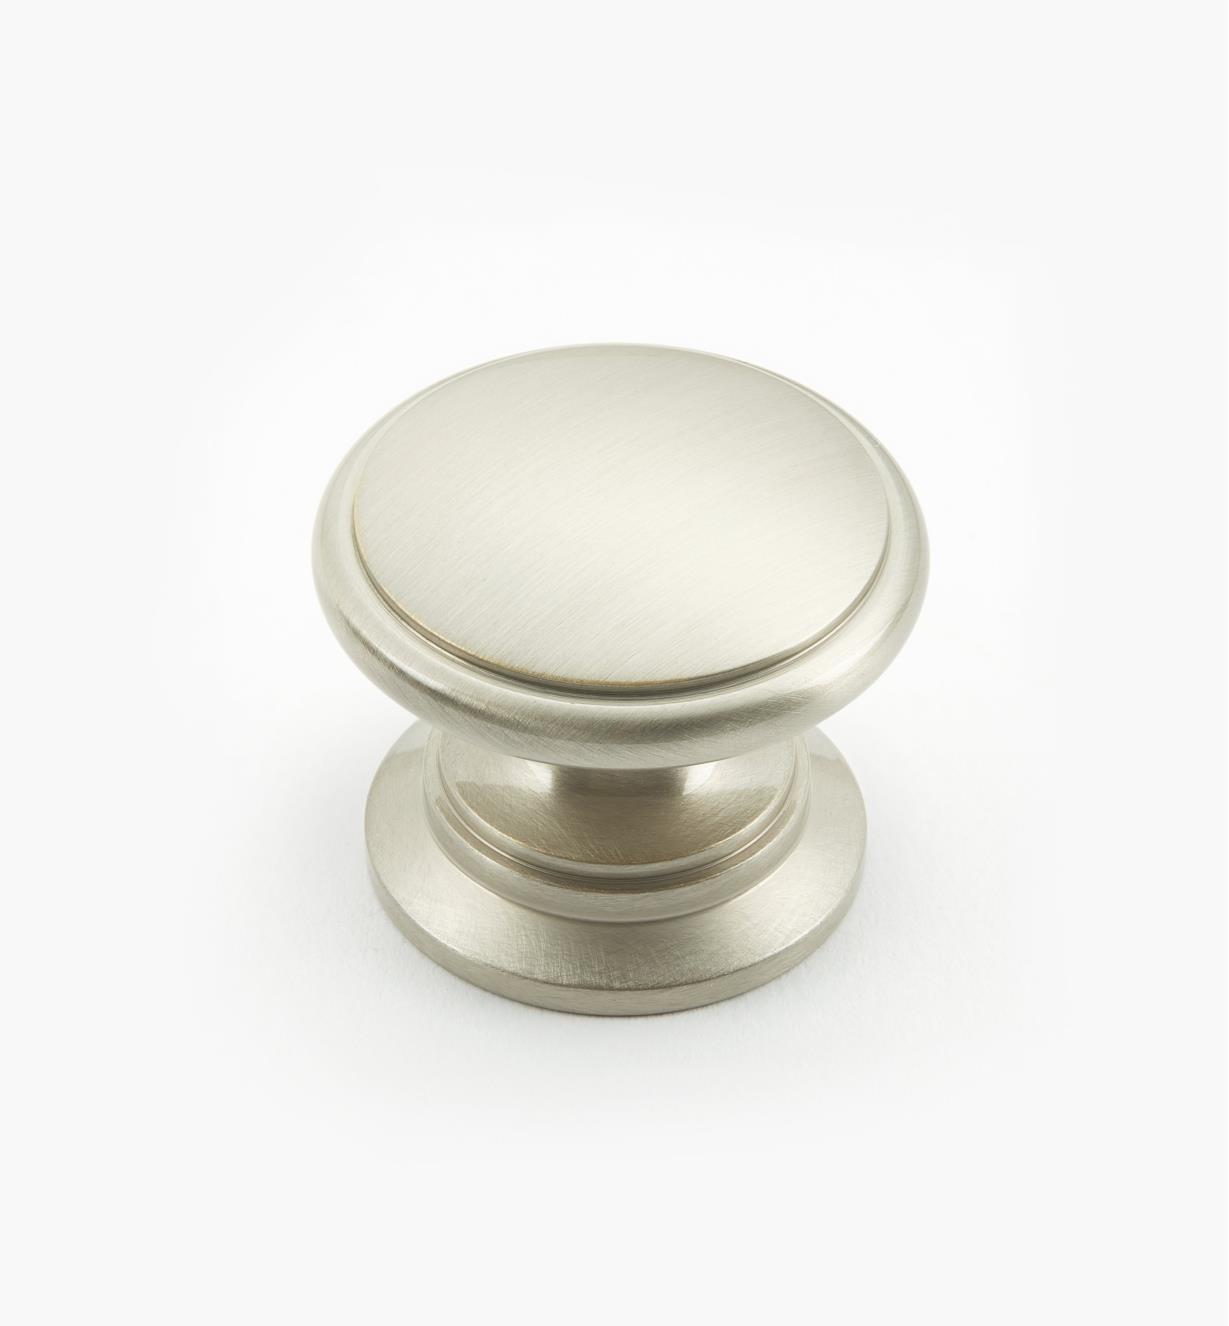 "02W2662 - Satin Nickel Suite - 1 1/4"" x 1"" Cast Brass Knob"